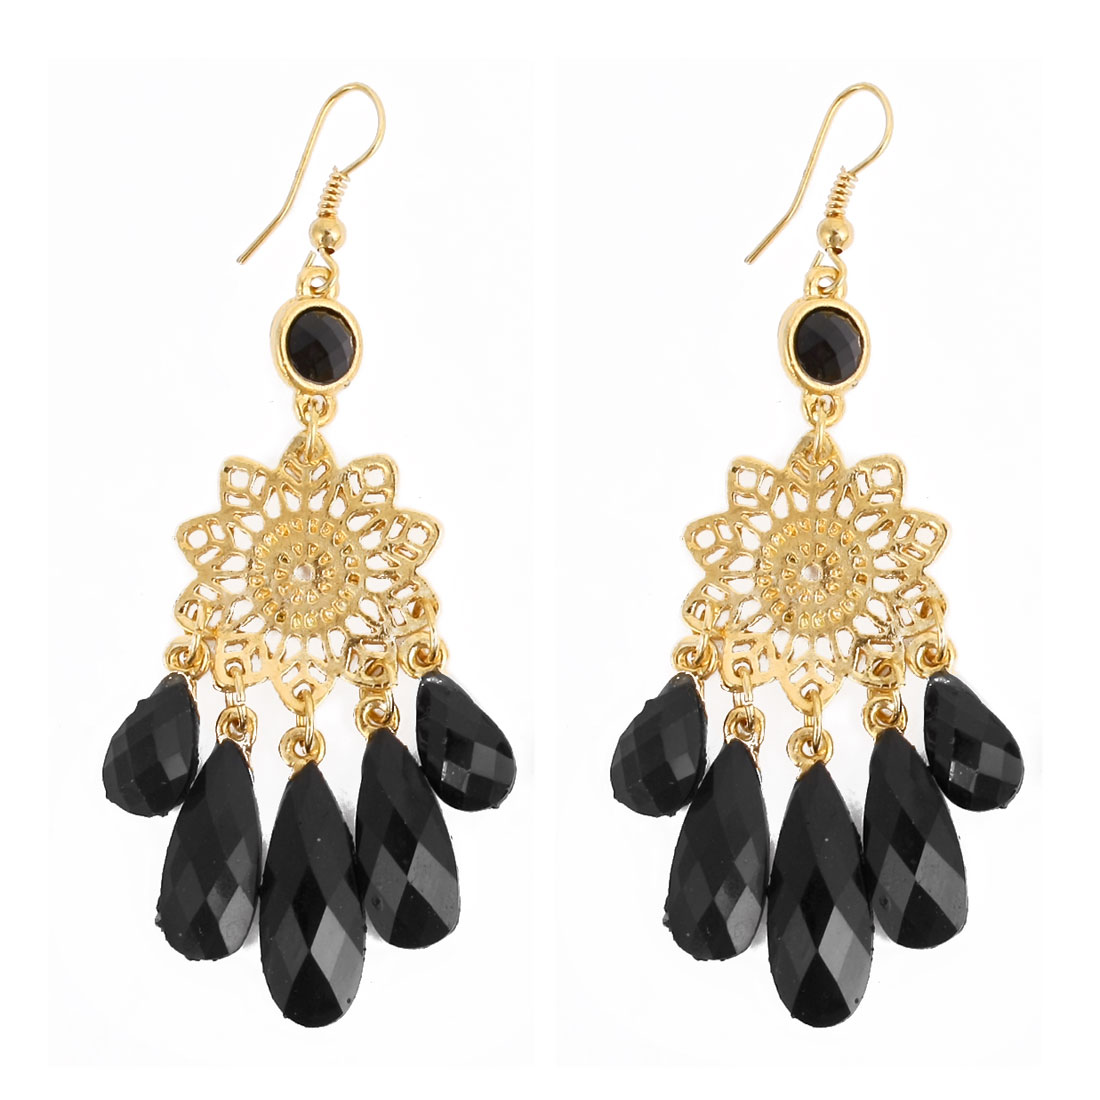 Lady Pair Black Gold Tone Plastic Beads Decor Waterdrop Dangling Hook Earrings